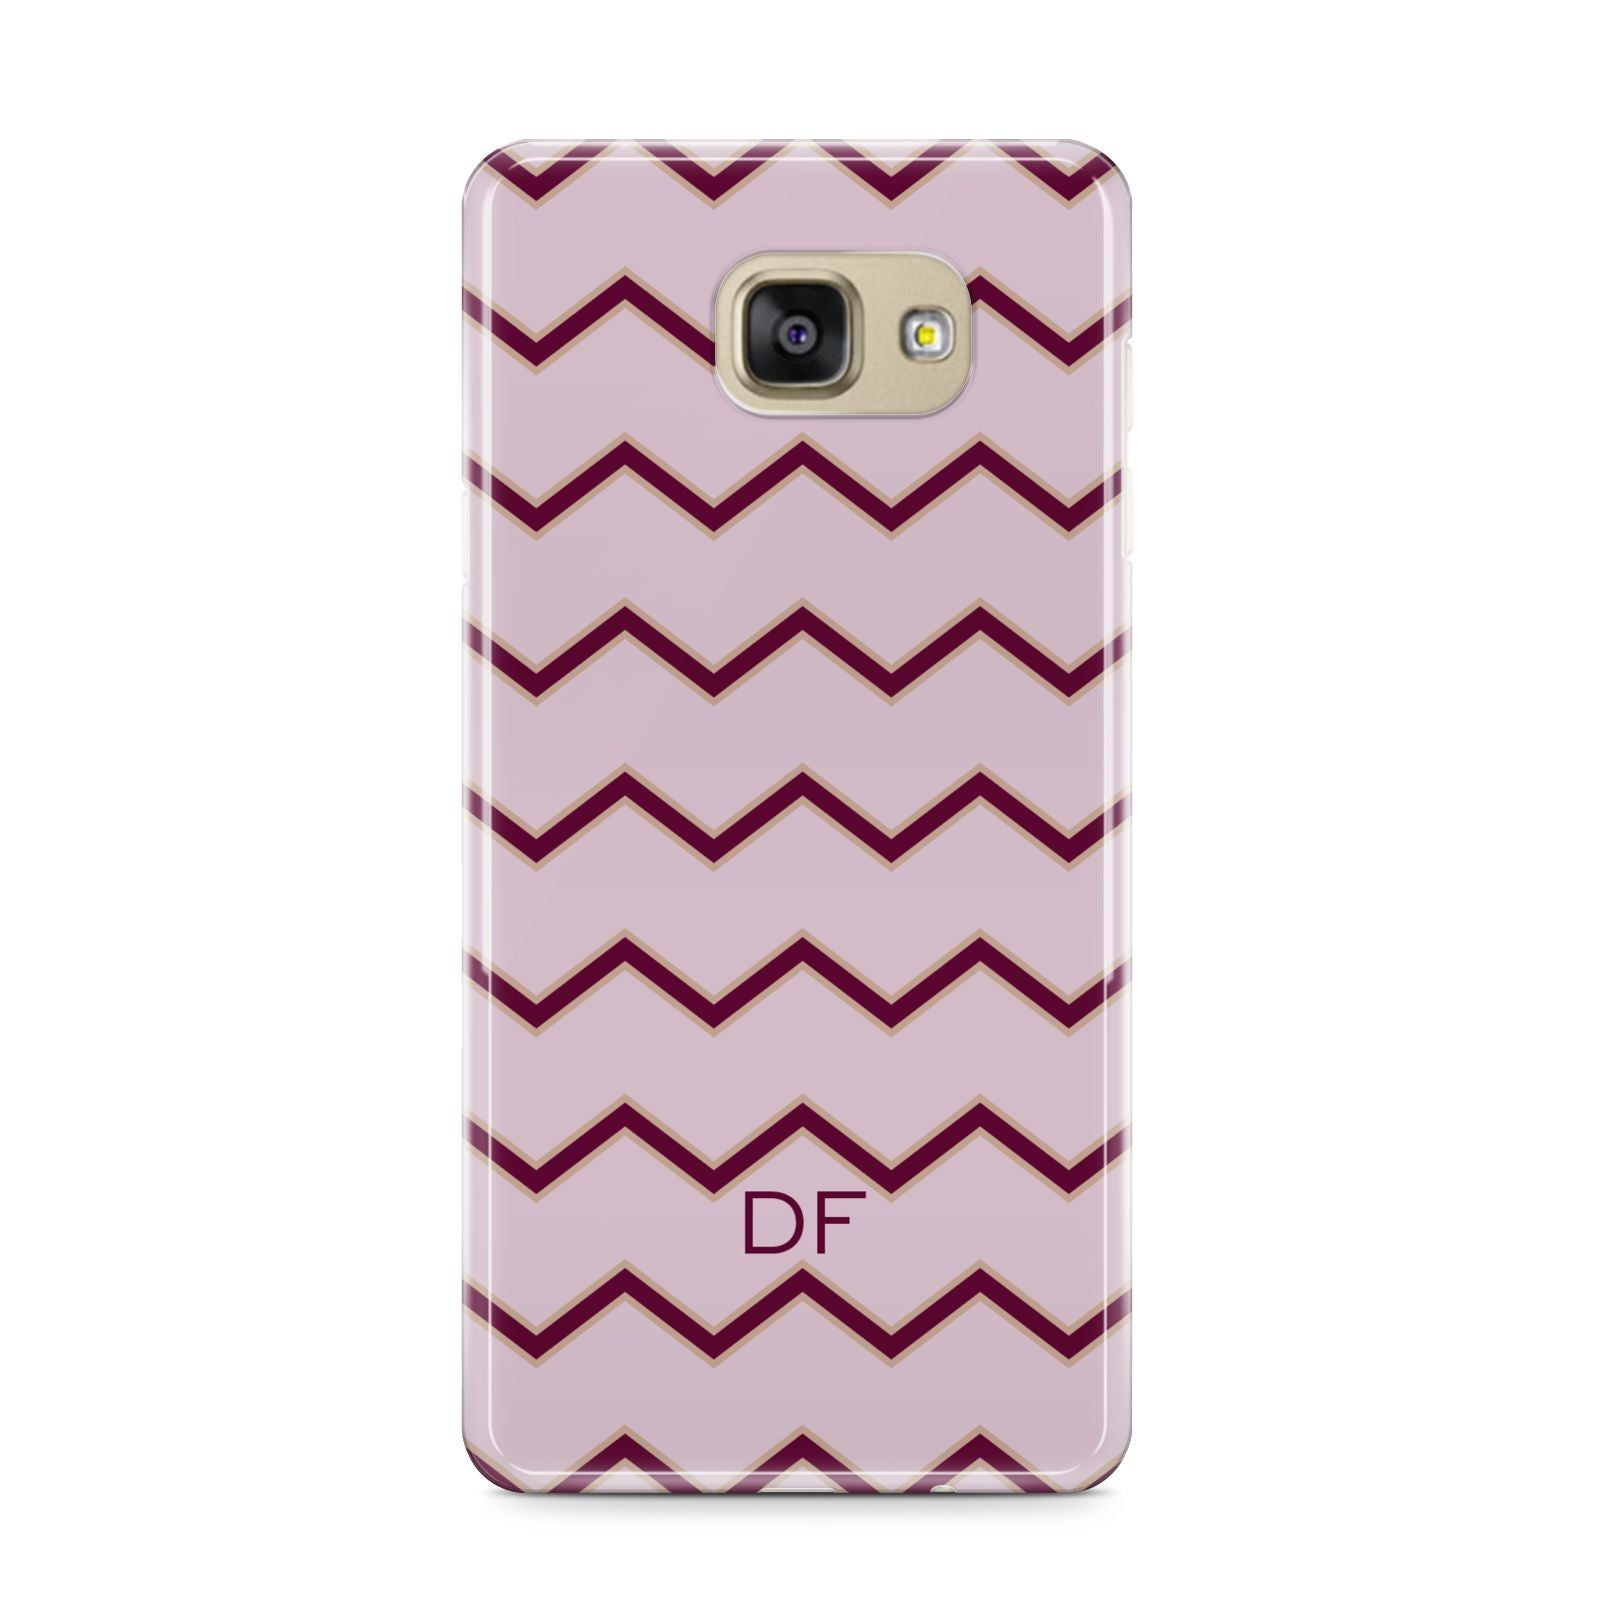 Personalised Chevron Burgundy Samsung Galaxy A9 2016 Case on gold phone